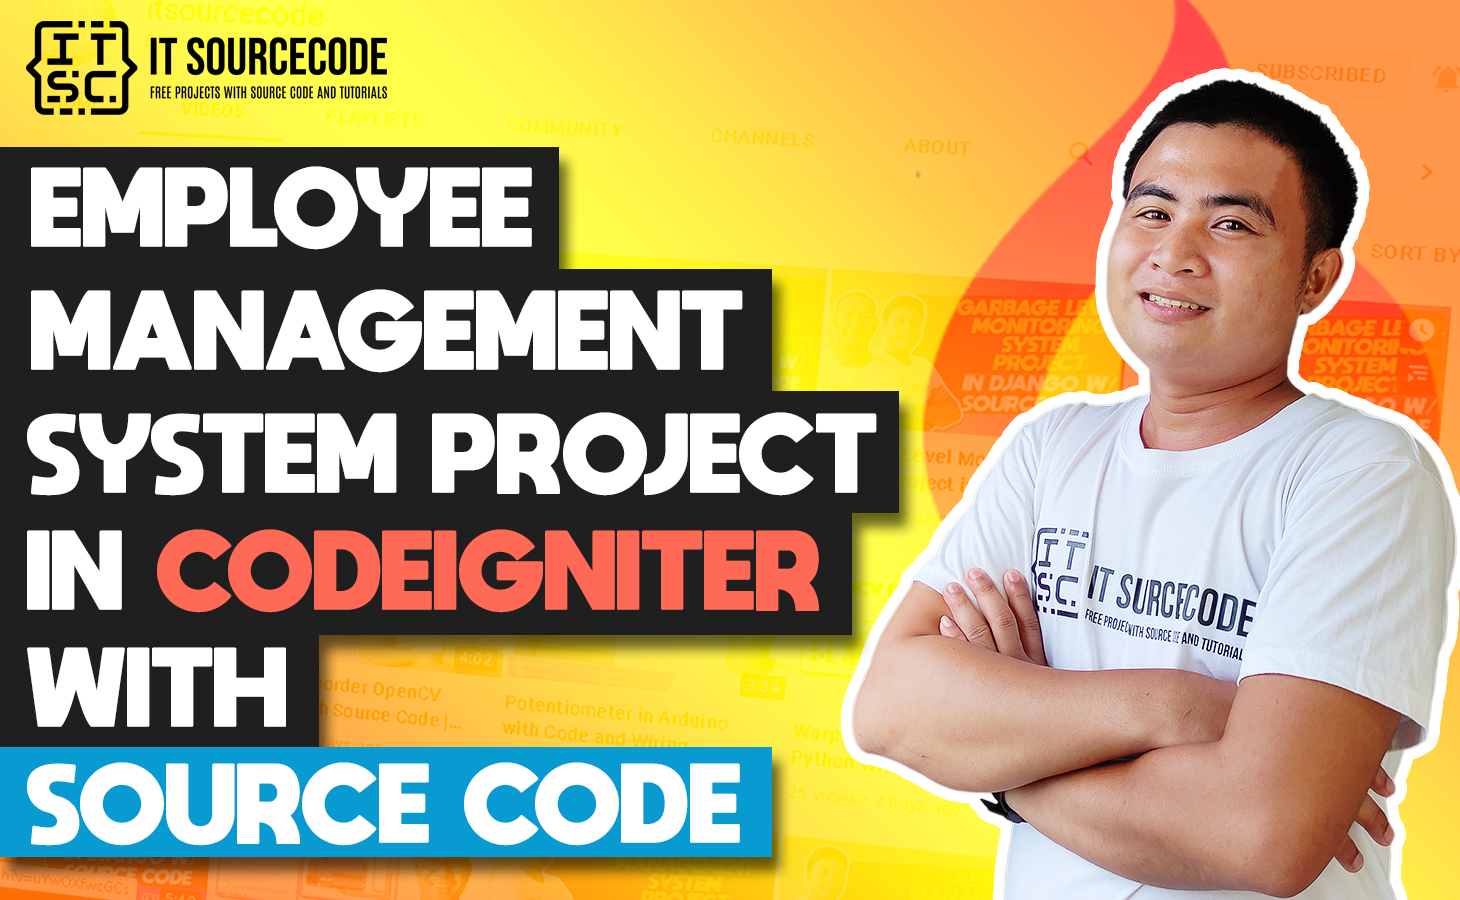 Employee Management System Project In CodeIgniter With Source Code